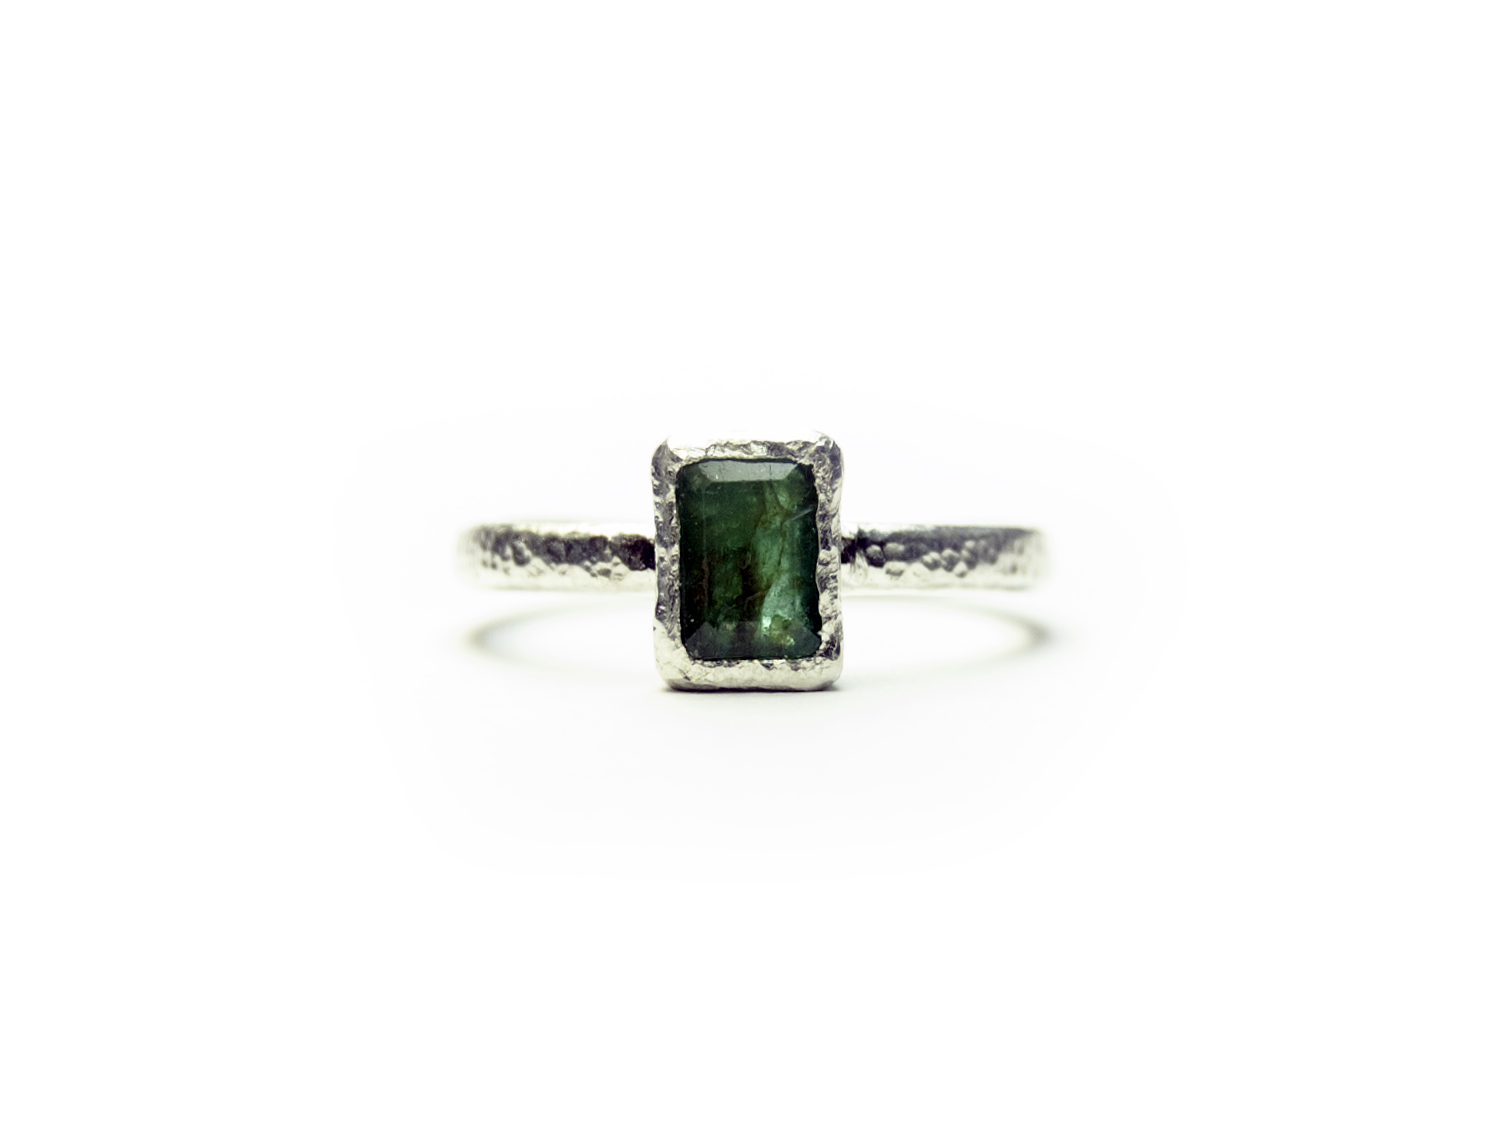 100% recycled sterling silver featuring an emerald cut natural emerald.